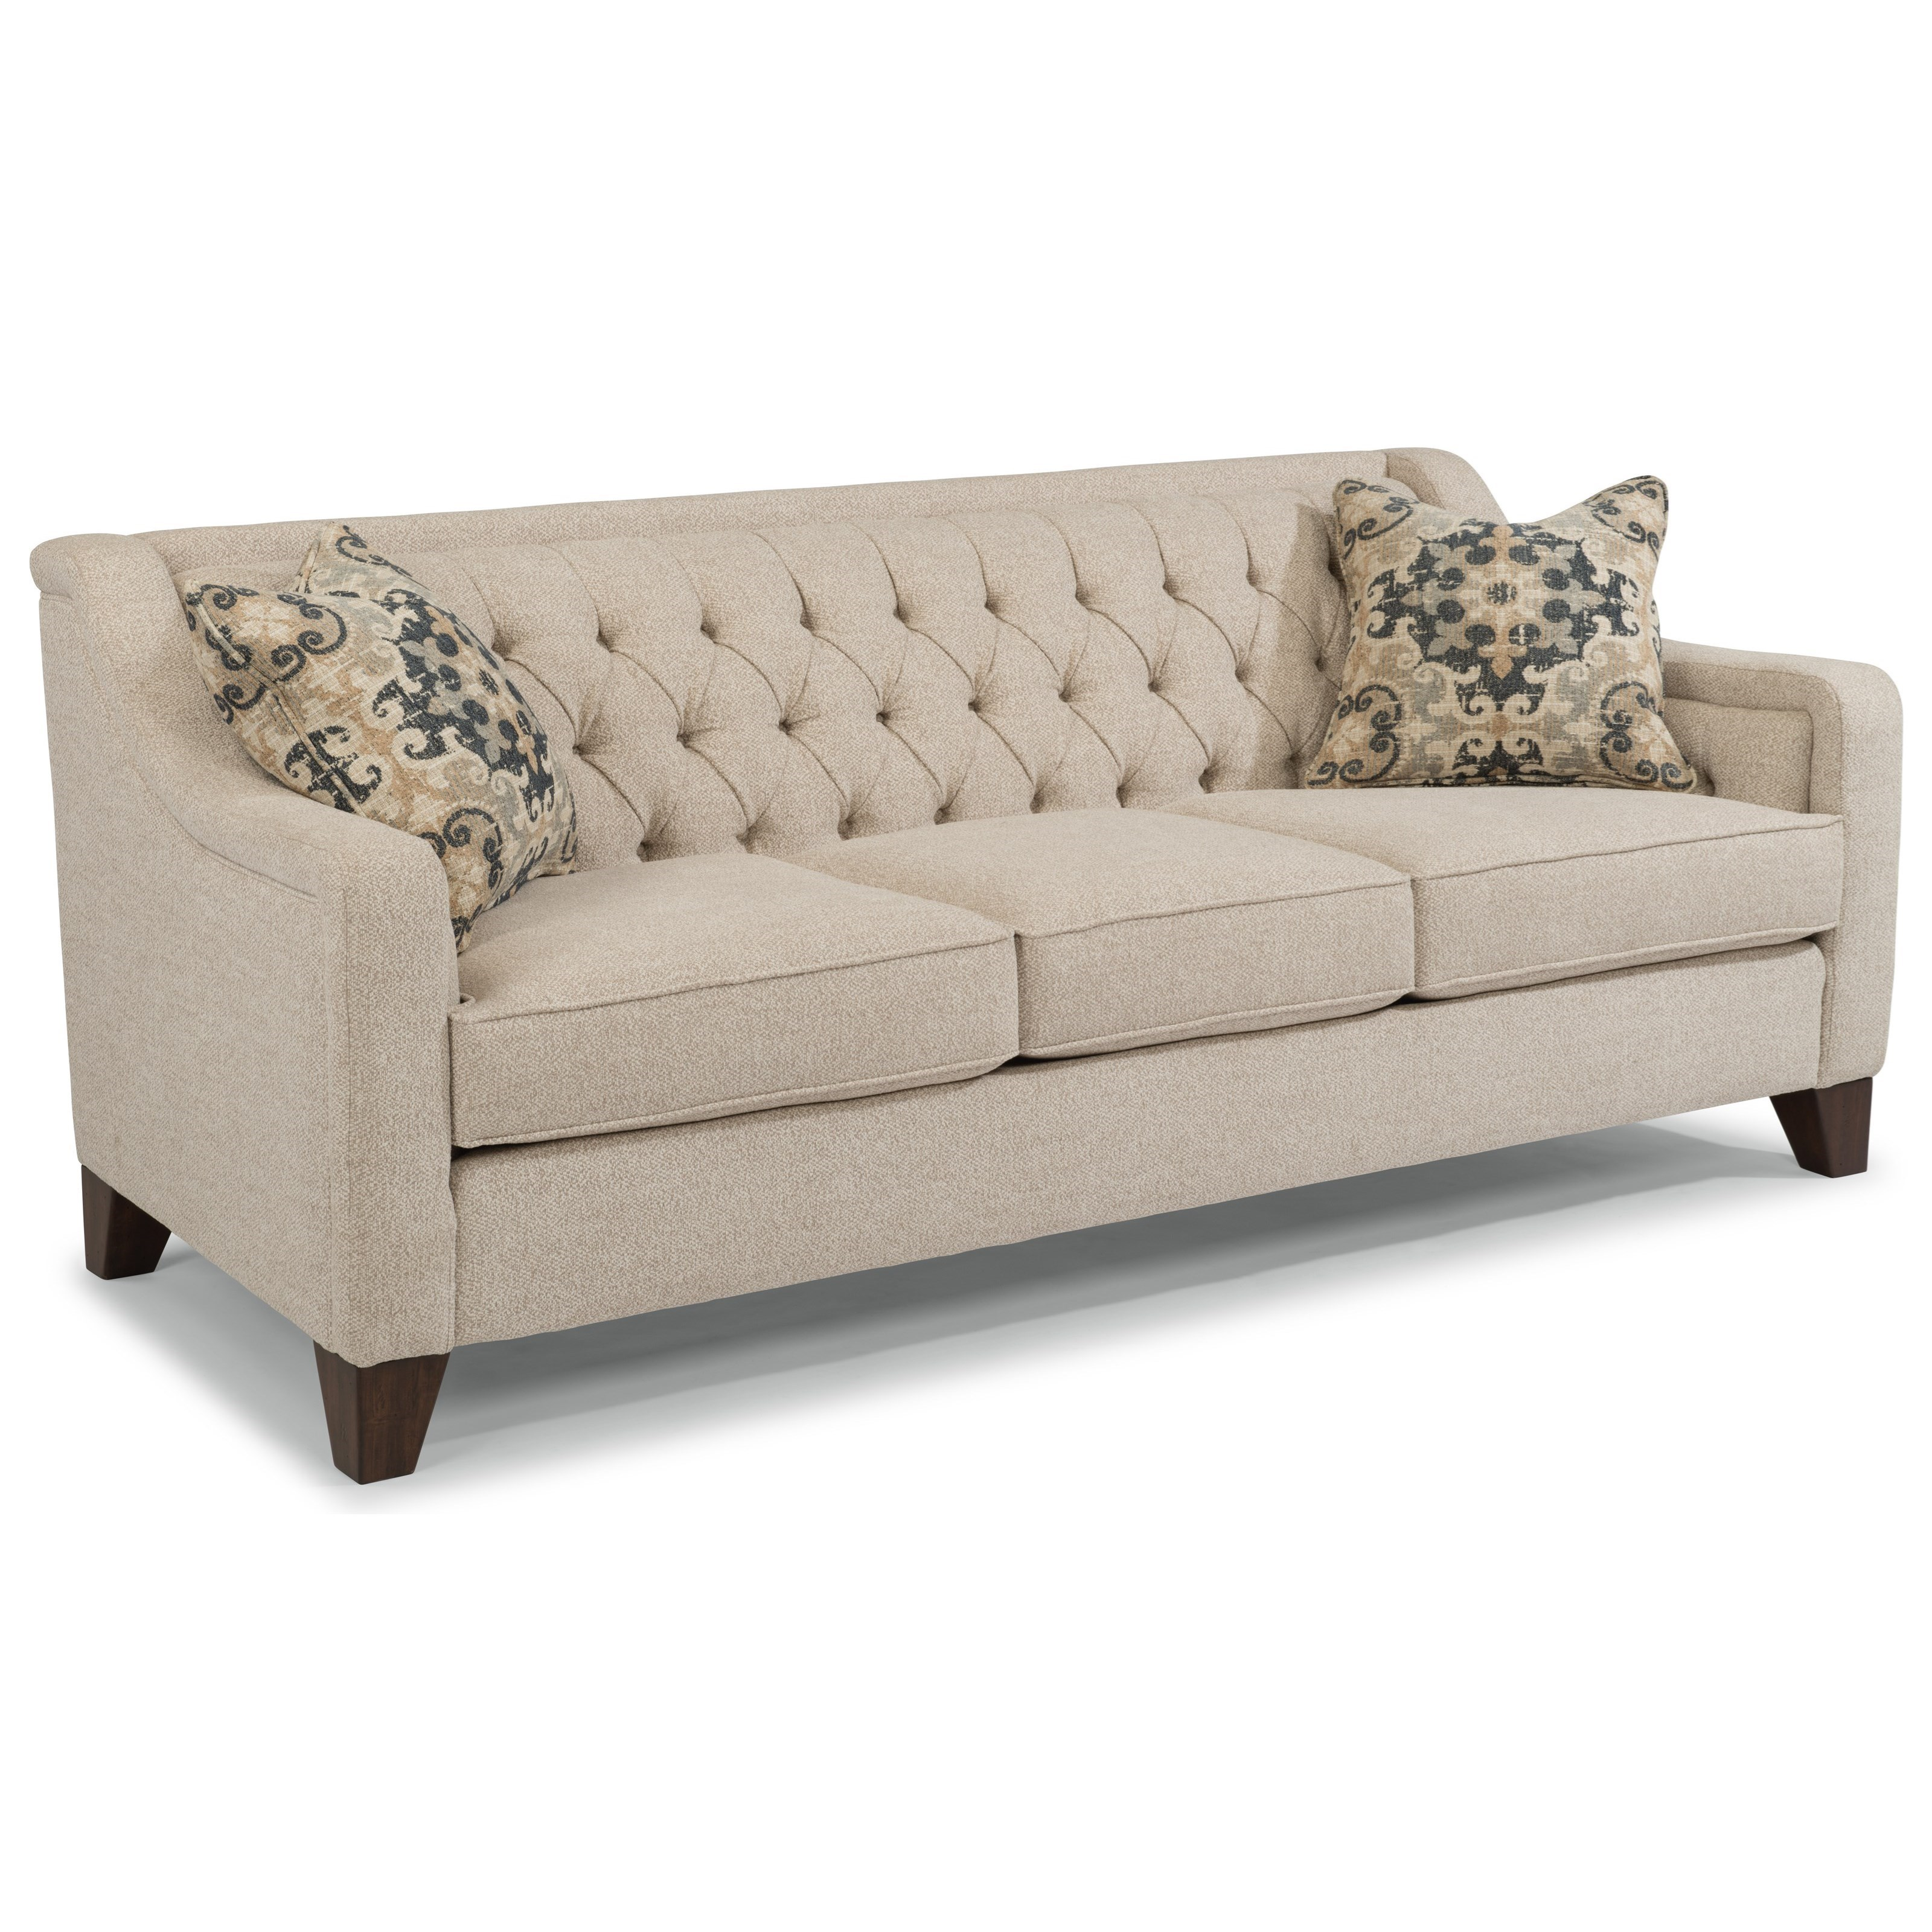 Genial Flexsteel Sullivan 7103 31 Contemporary Sofa With Tufted Back | Dunk U0026  Bright Furniture | Sofas